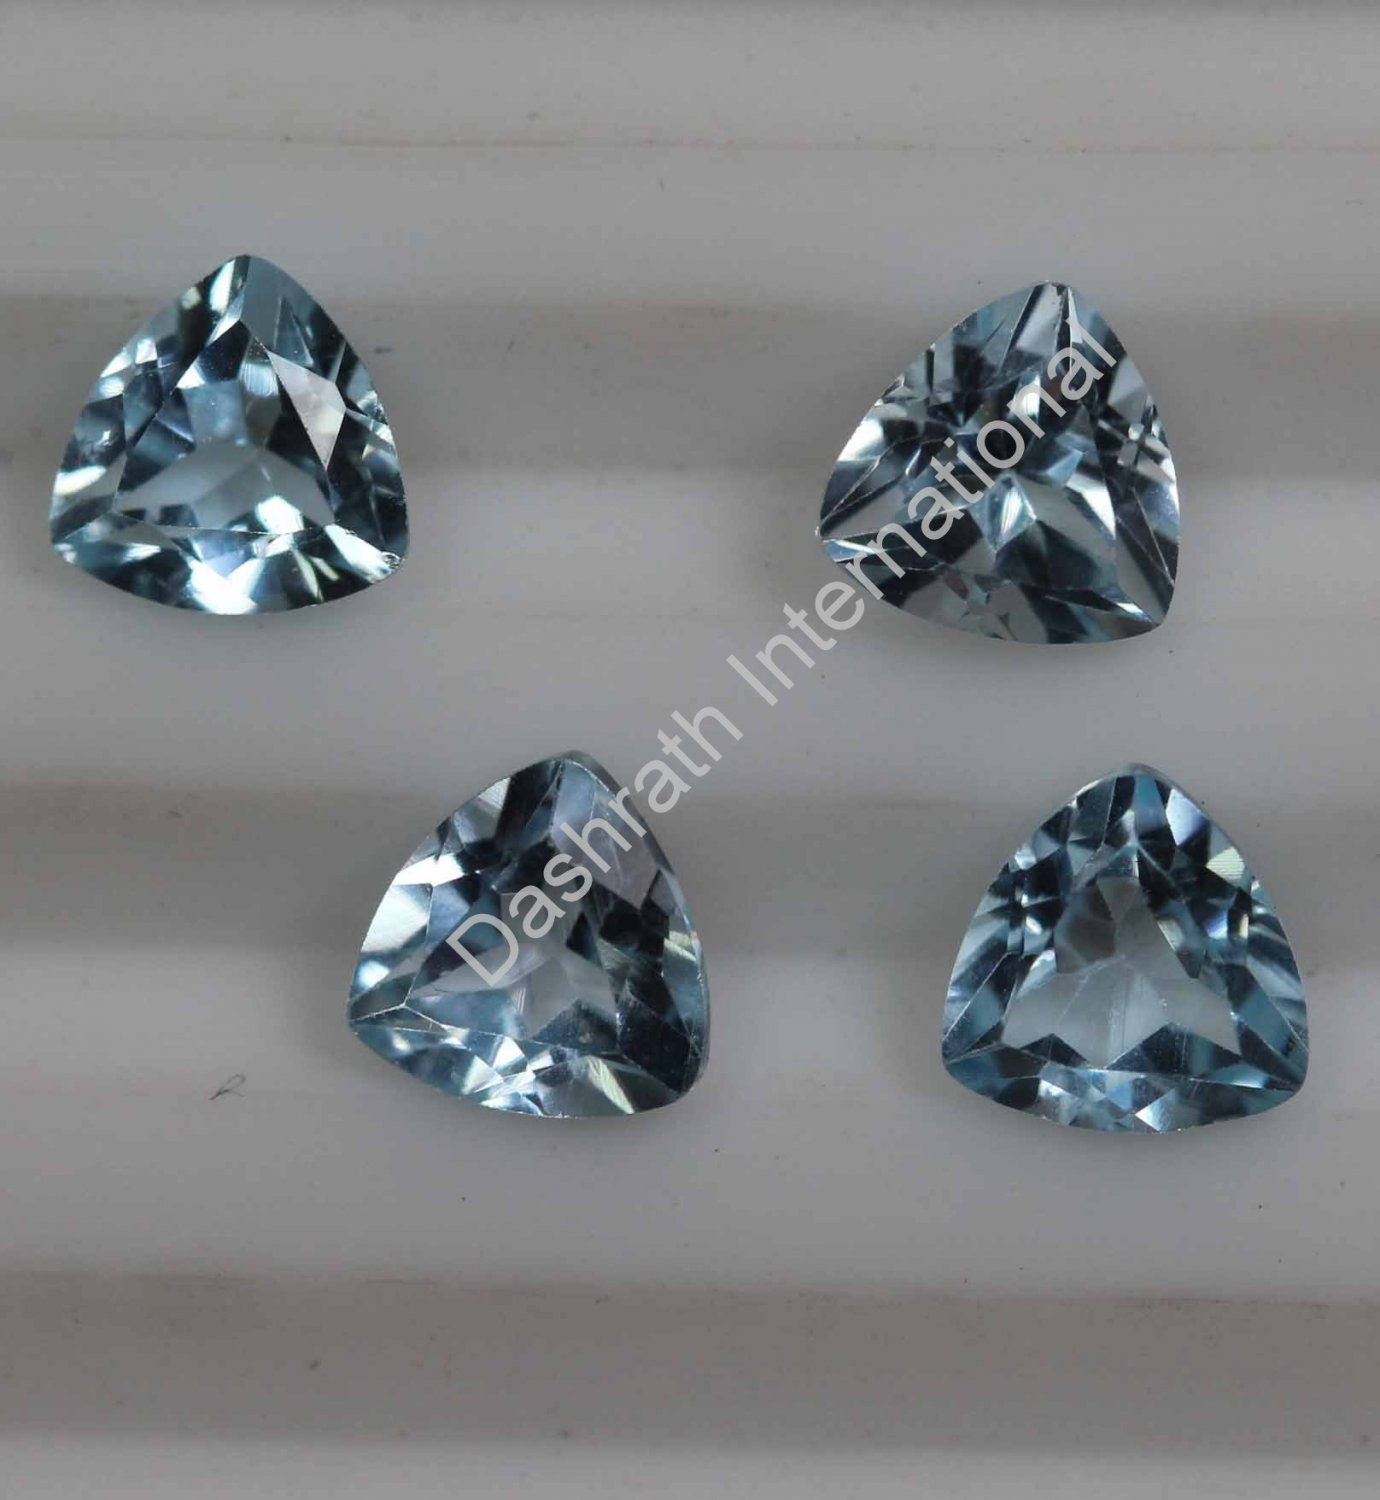 5mm Natural Sky Blue Topaz Faceted Cut Trillion 25 Pieces Lot Top Quality Loose Gemstone